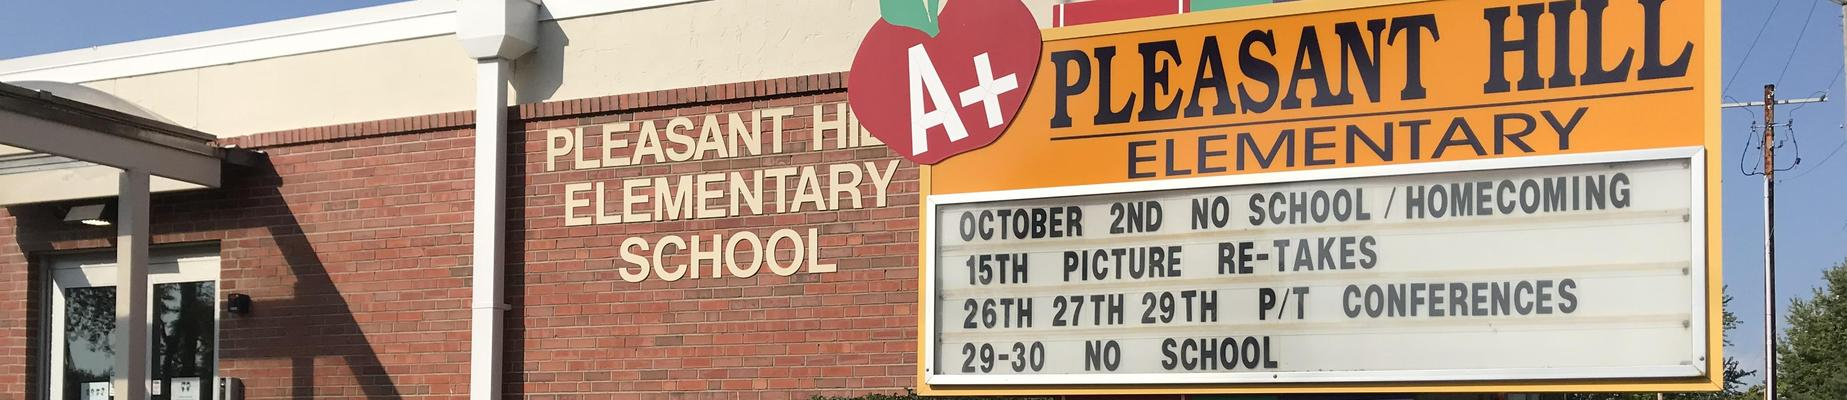 Pleasant Hill Elementary sign